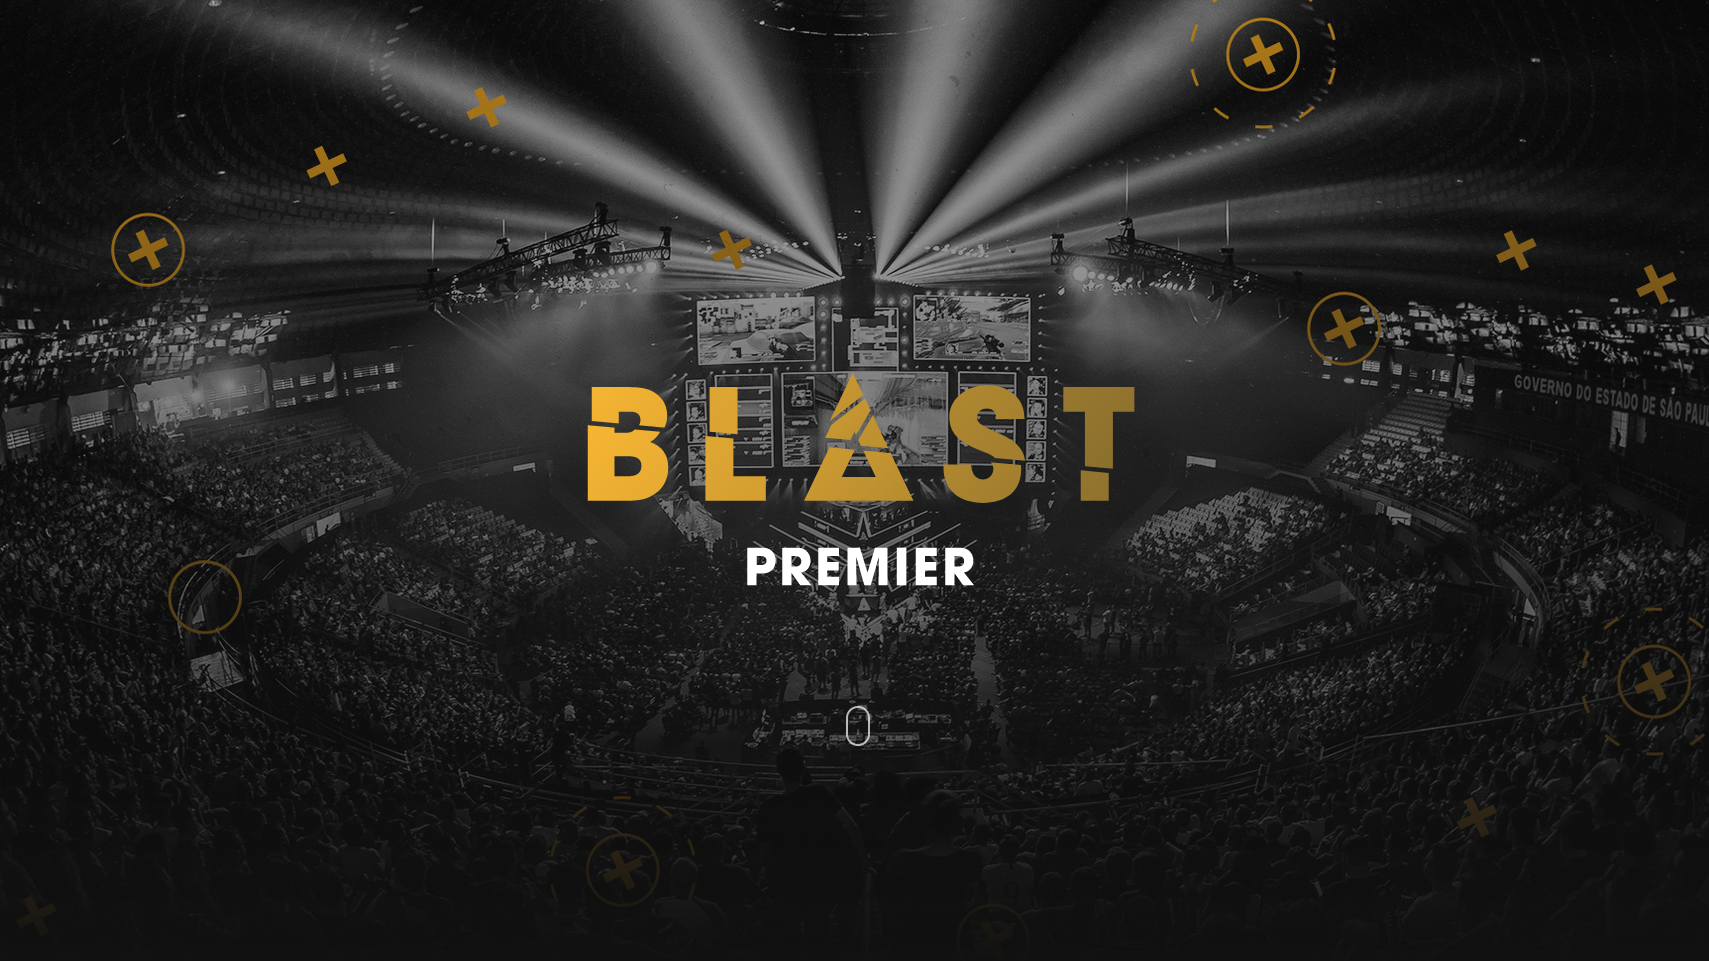 BLAST Premier inks a partnership Deal with Nubia Technology